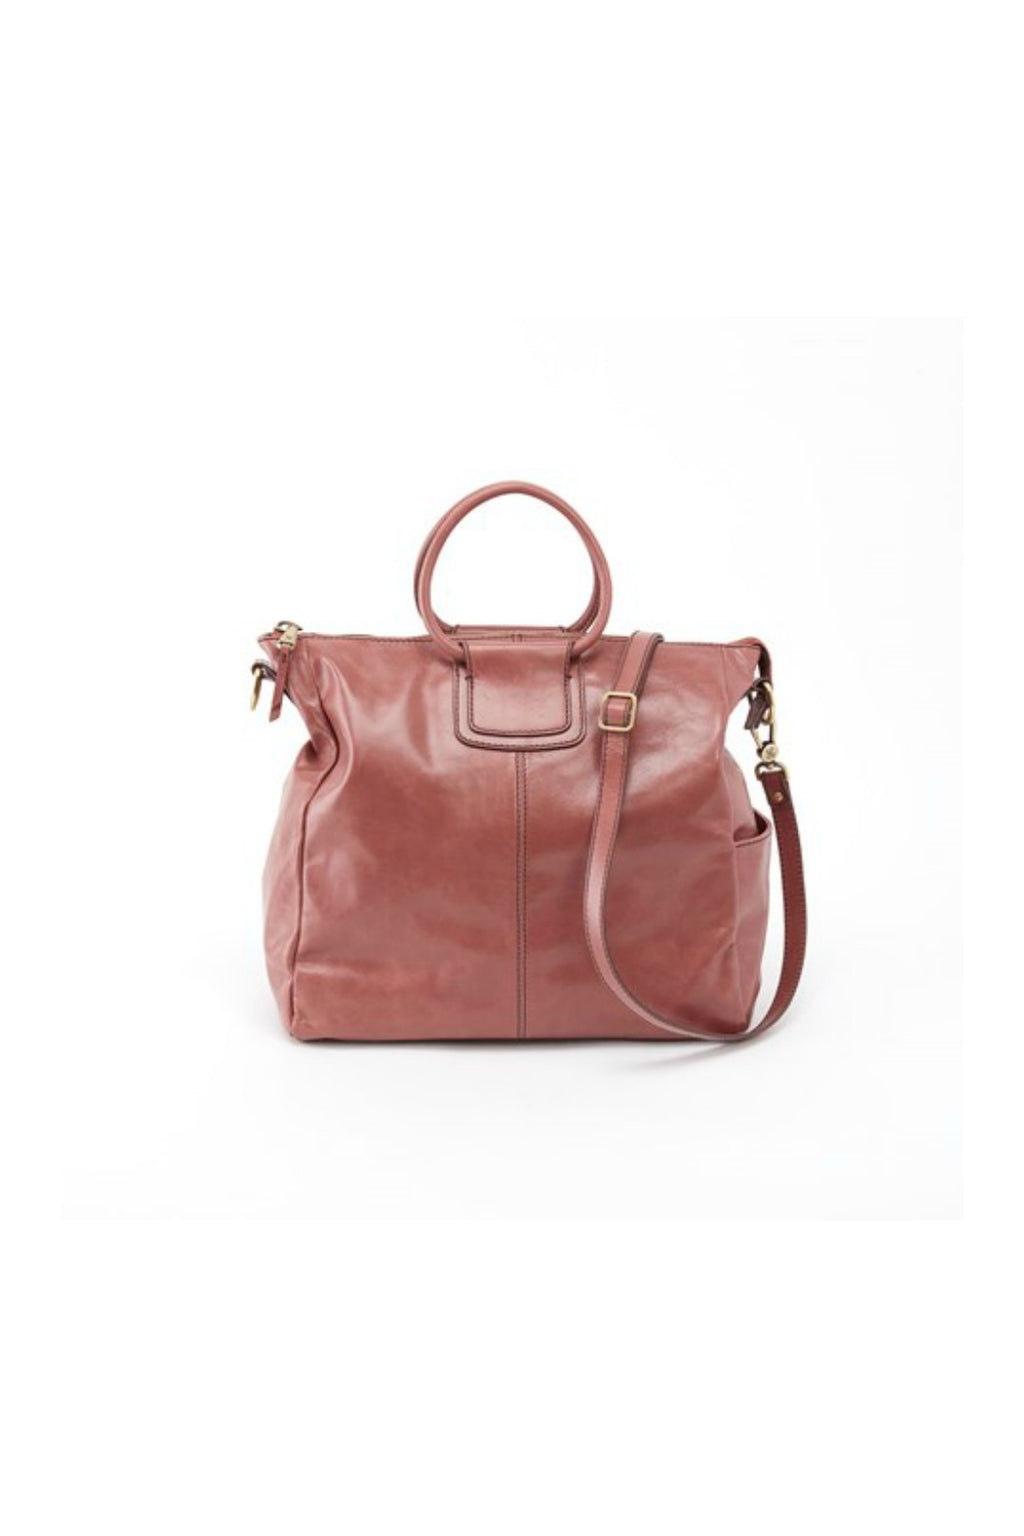 Hobo Sheila Travel Bag - Burnished Rose